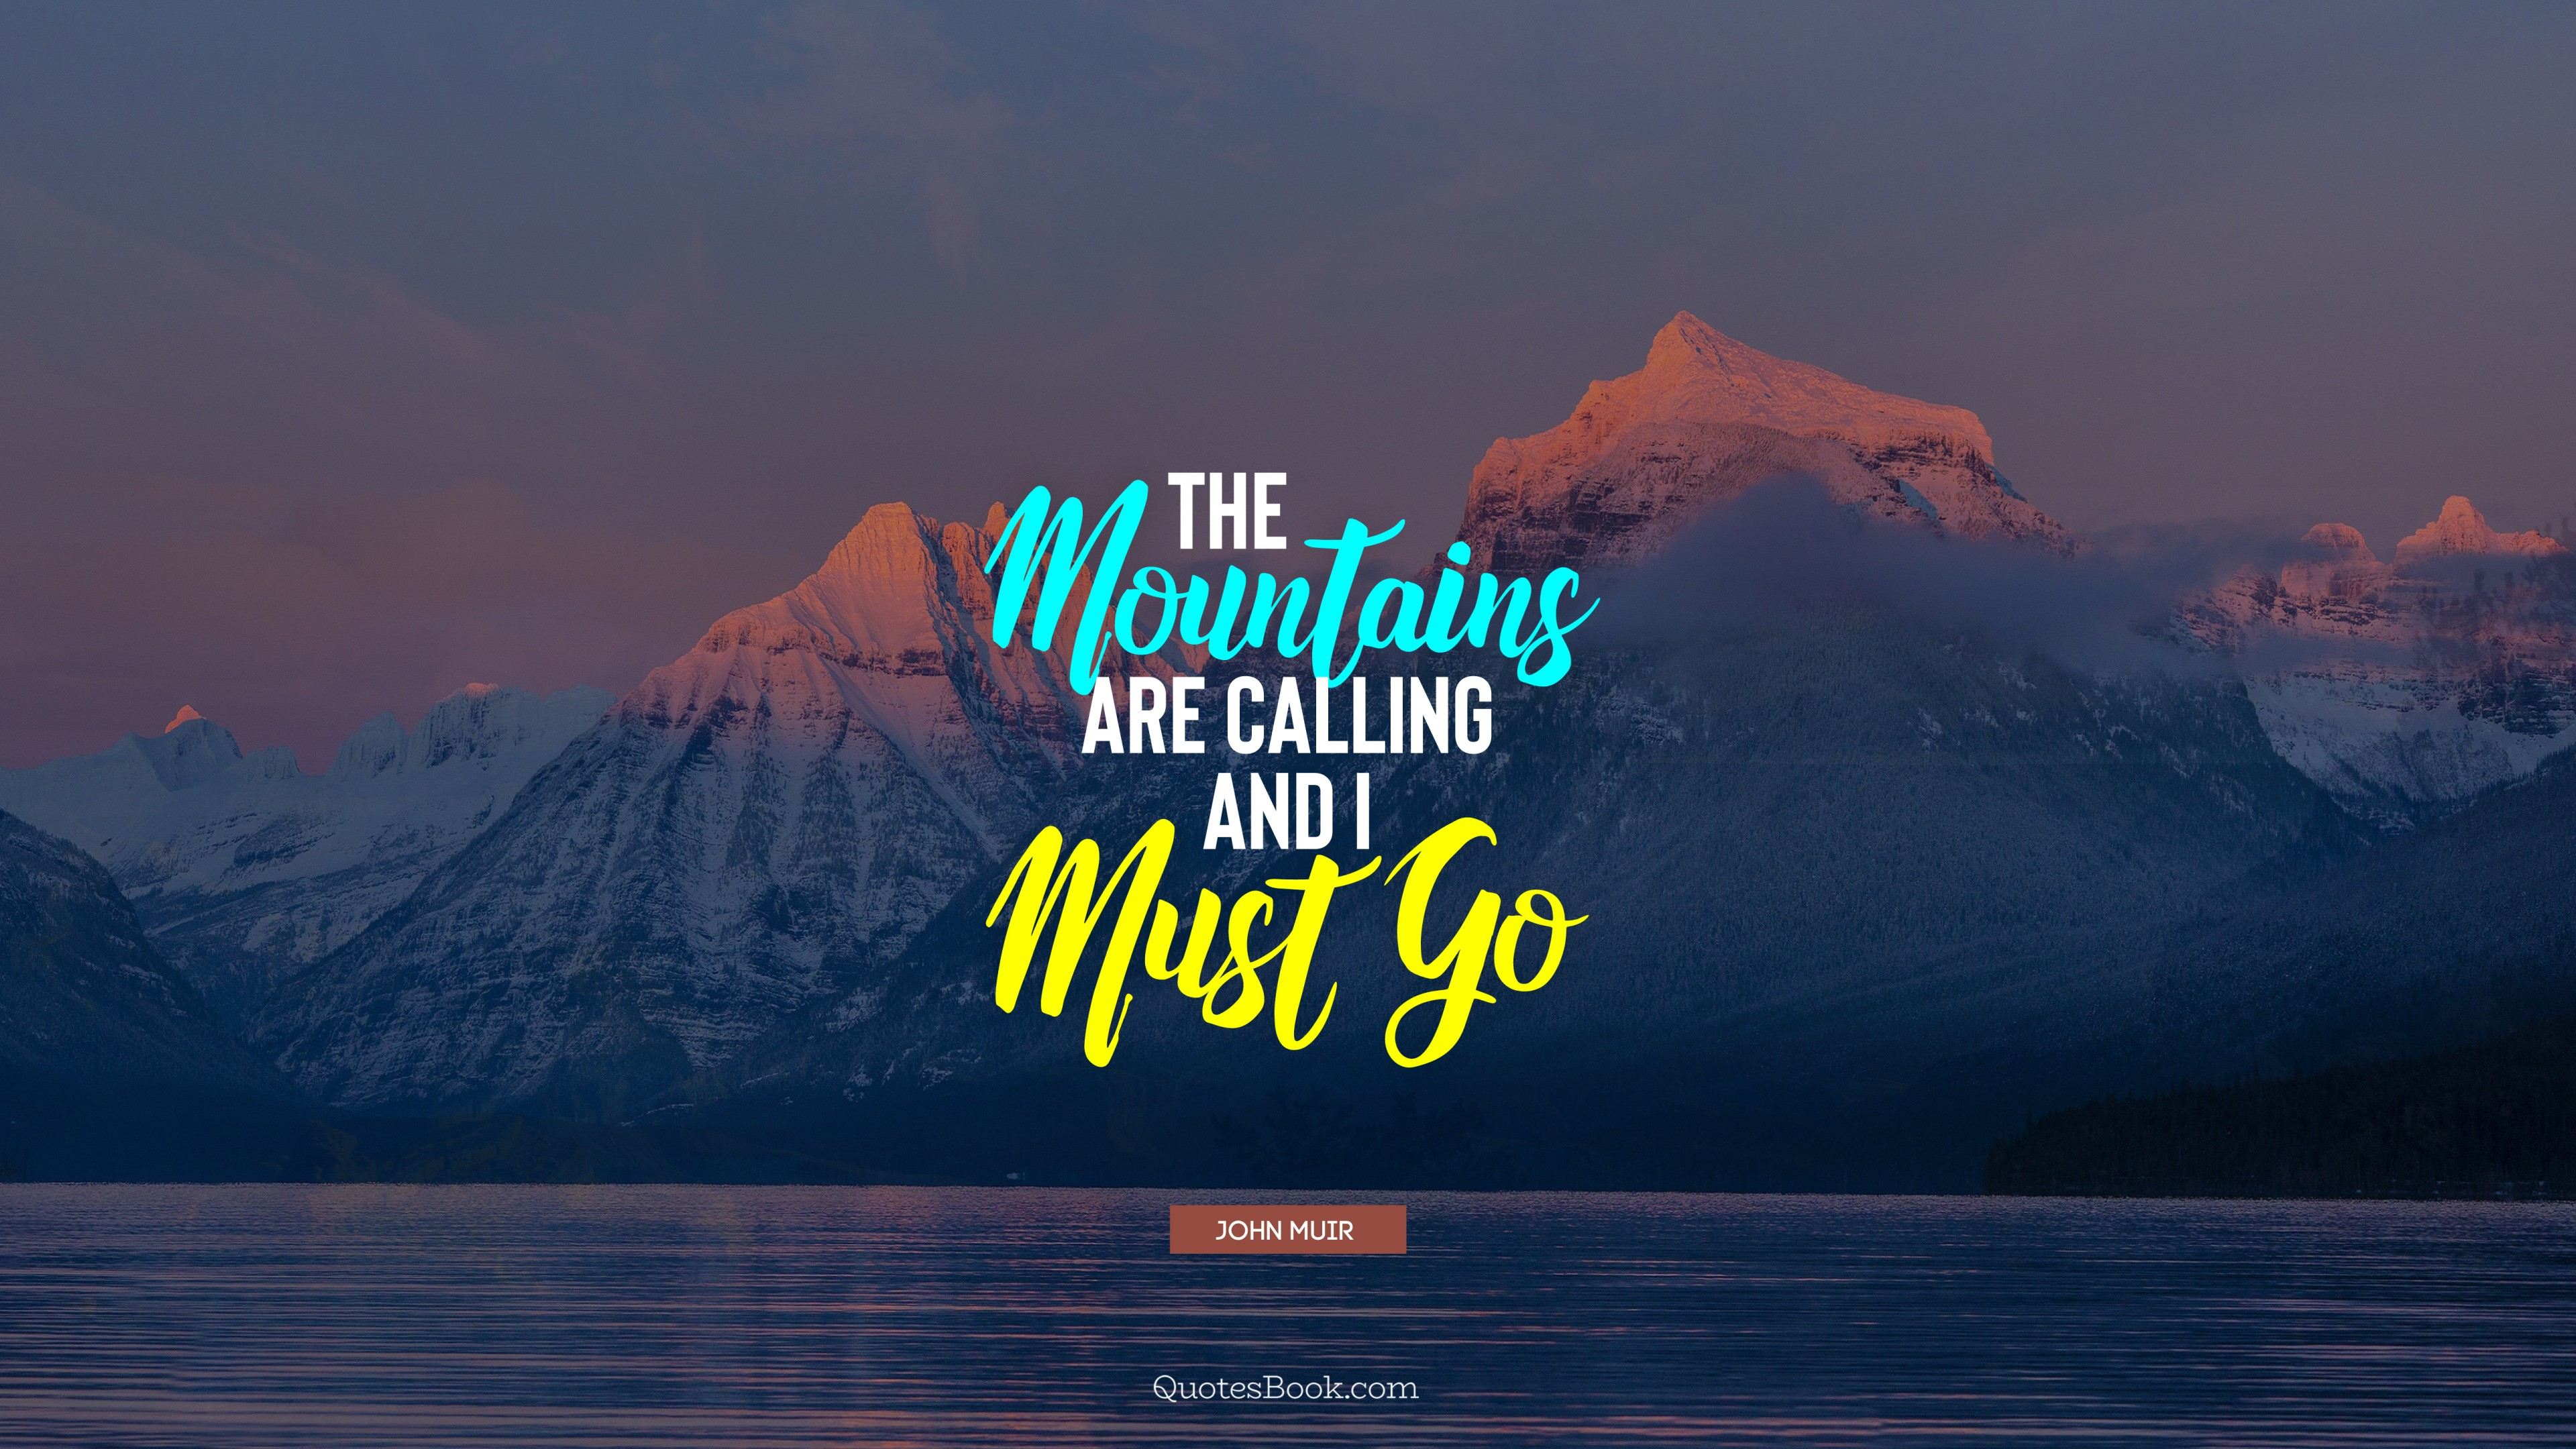 The Mountains Are Calling And I Must Go Quote By John Muir